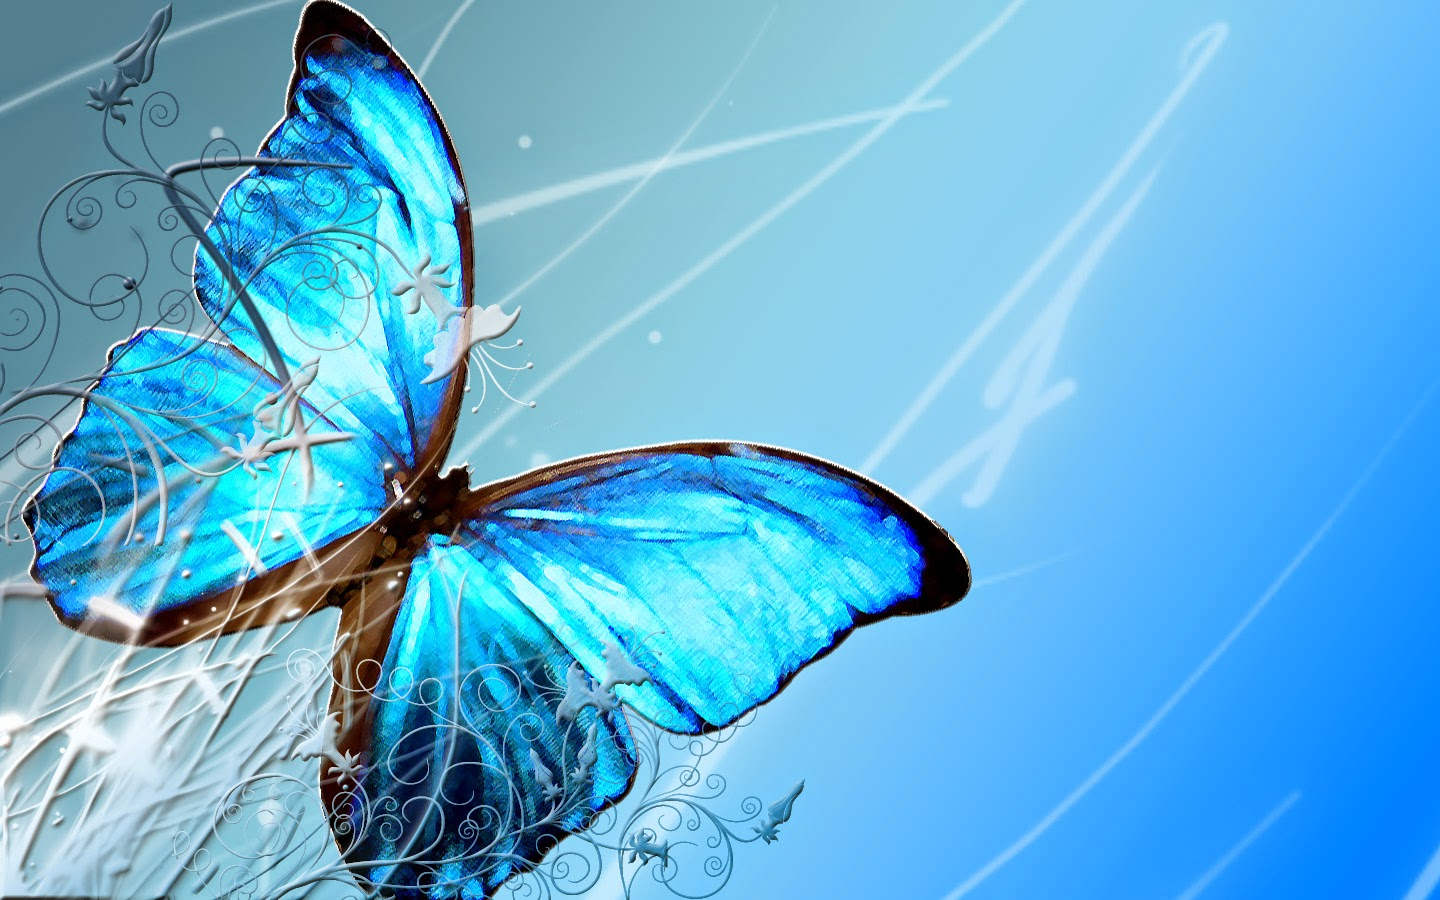 Butterfly HD 1024 X 768 Size Wallpapers